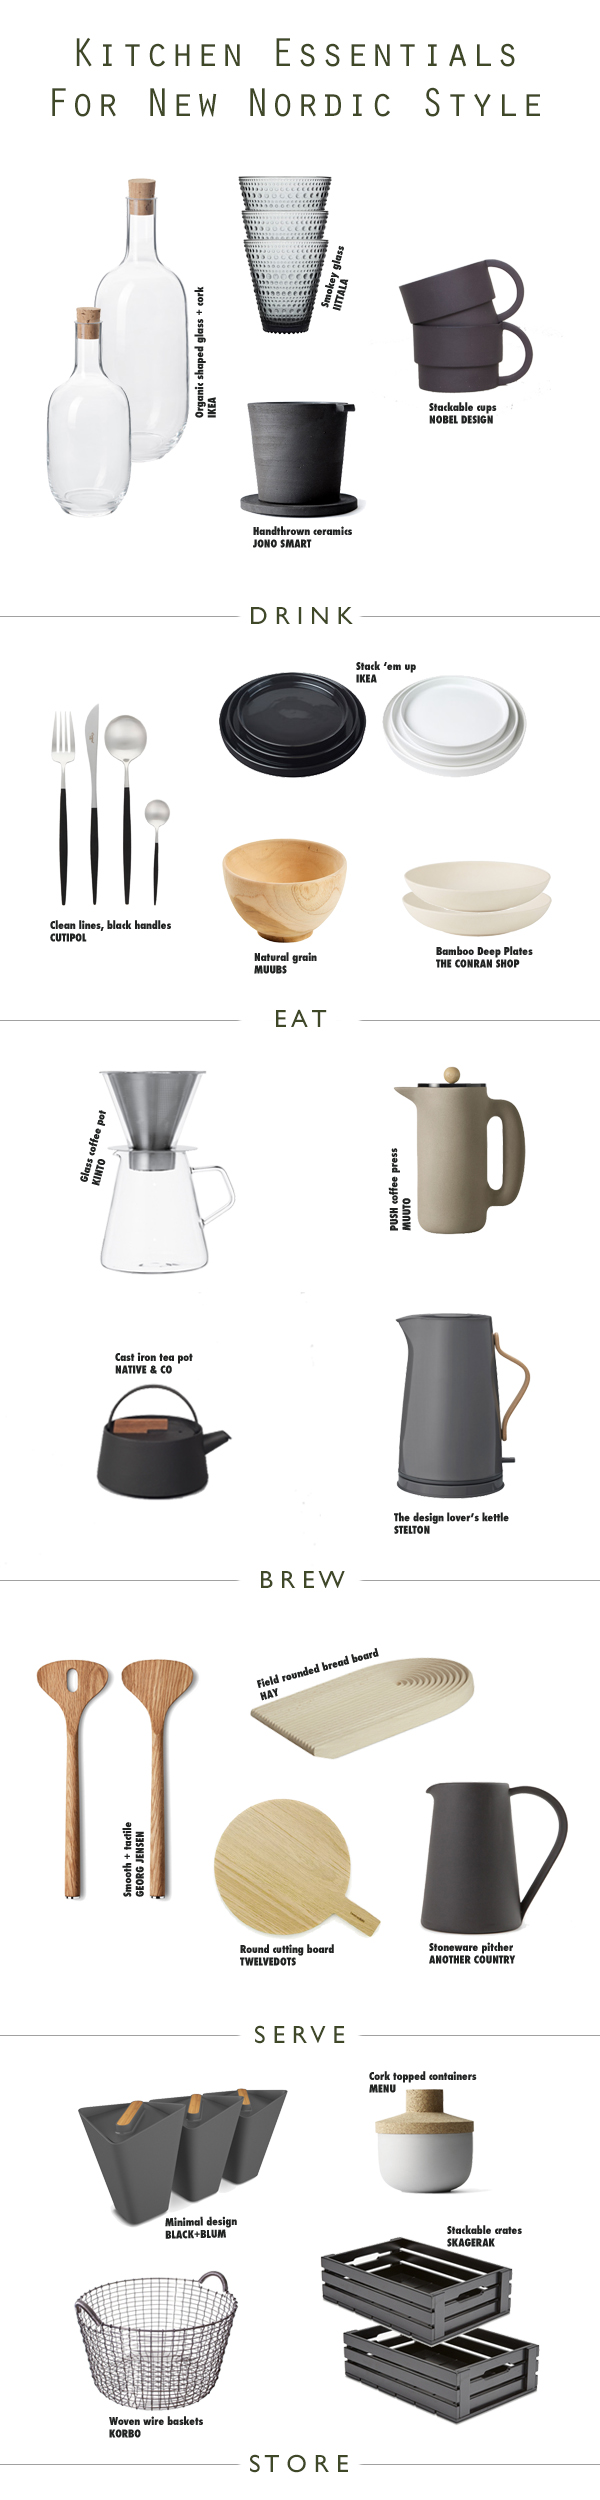 Essential kitchen accessories for Scandinavian New Nordic Styling